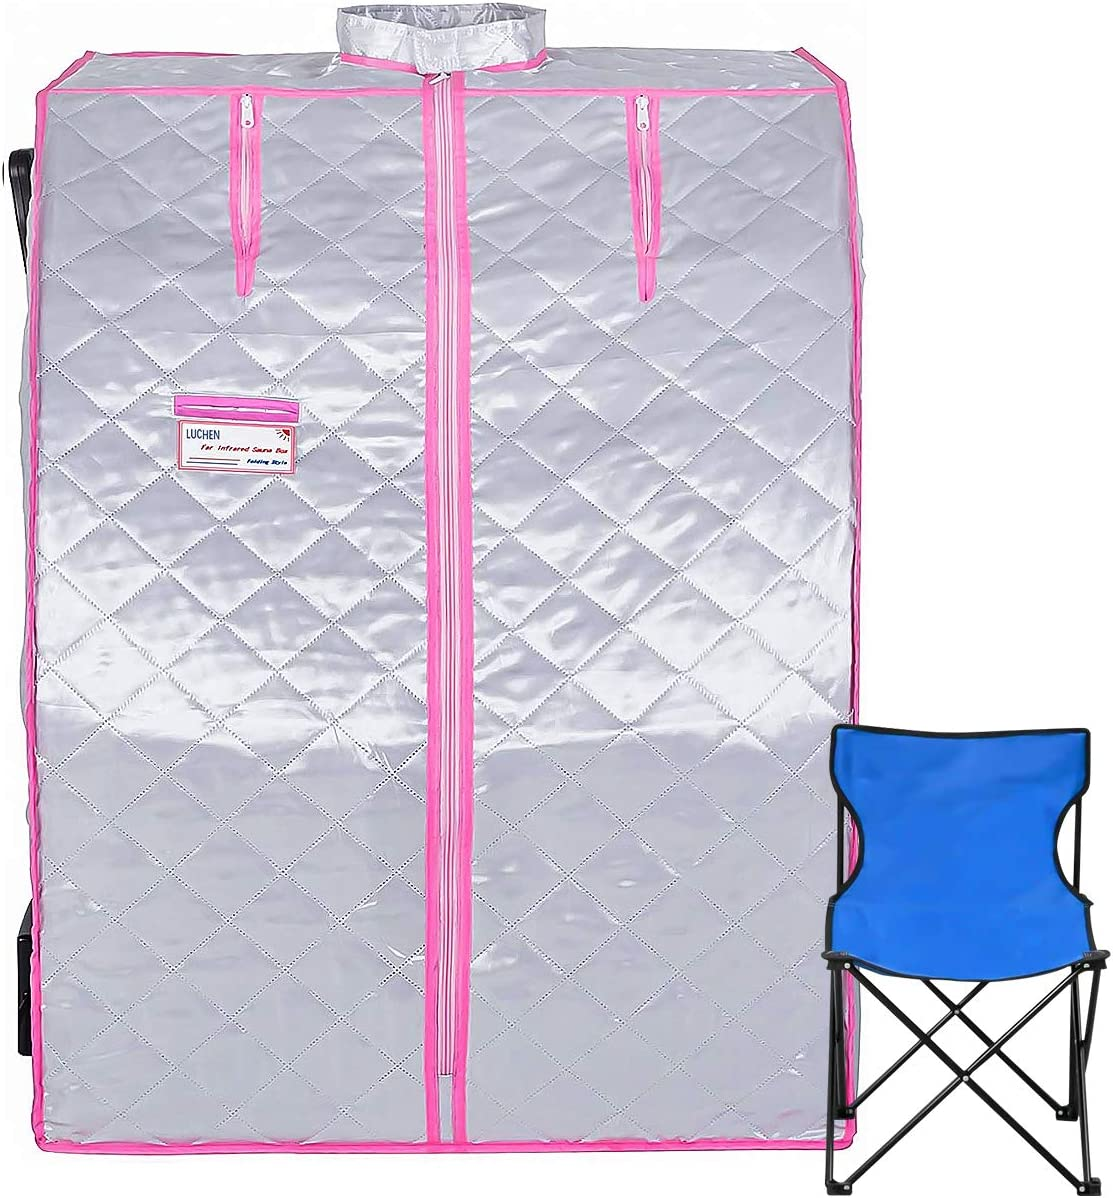 Far Infrared Sauna PortableHome Spa Detox Therapy Low-EMF Far Infrared Personal Sauna with Heating Foot Pad and Portable Chair (Sliver)